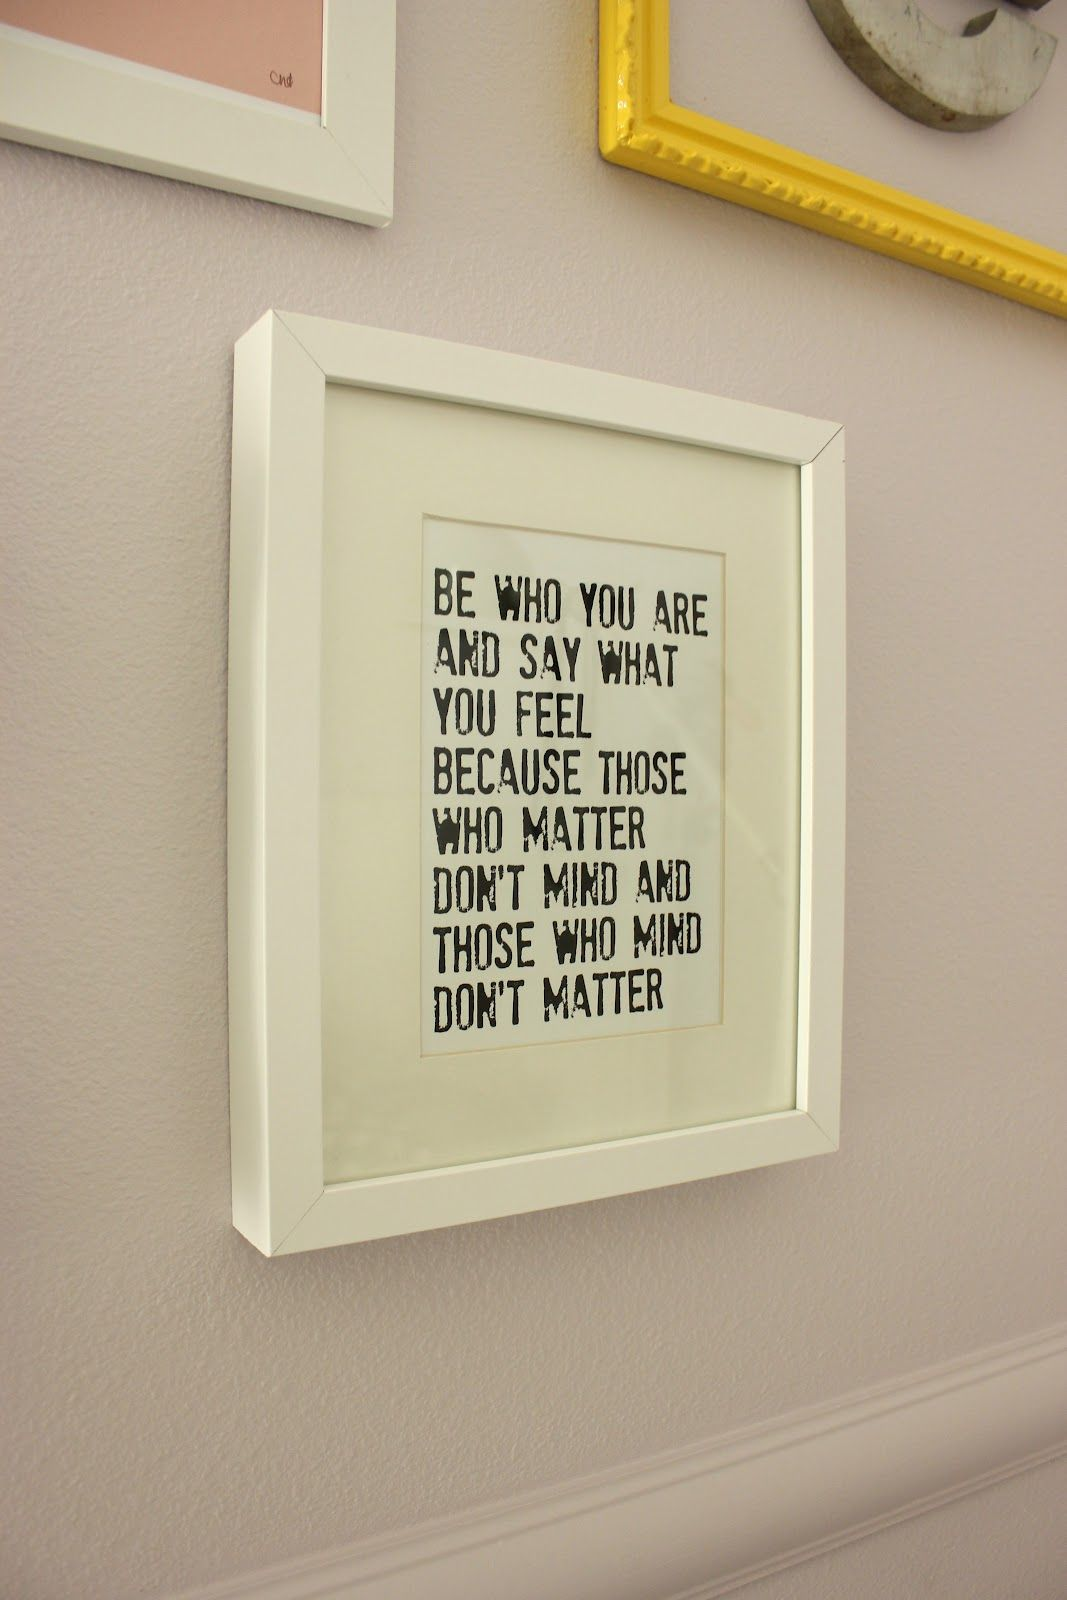 Picture Frames With Quotes Framed quotes. I'll use pink paper and brown frames with some  Picture Frames With Quotes